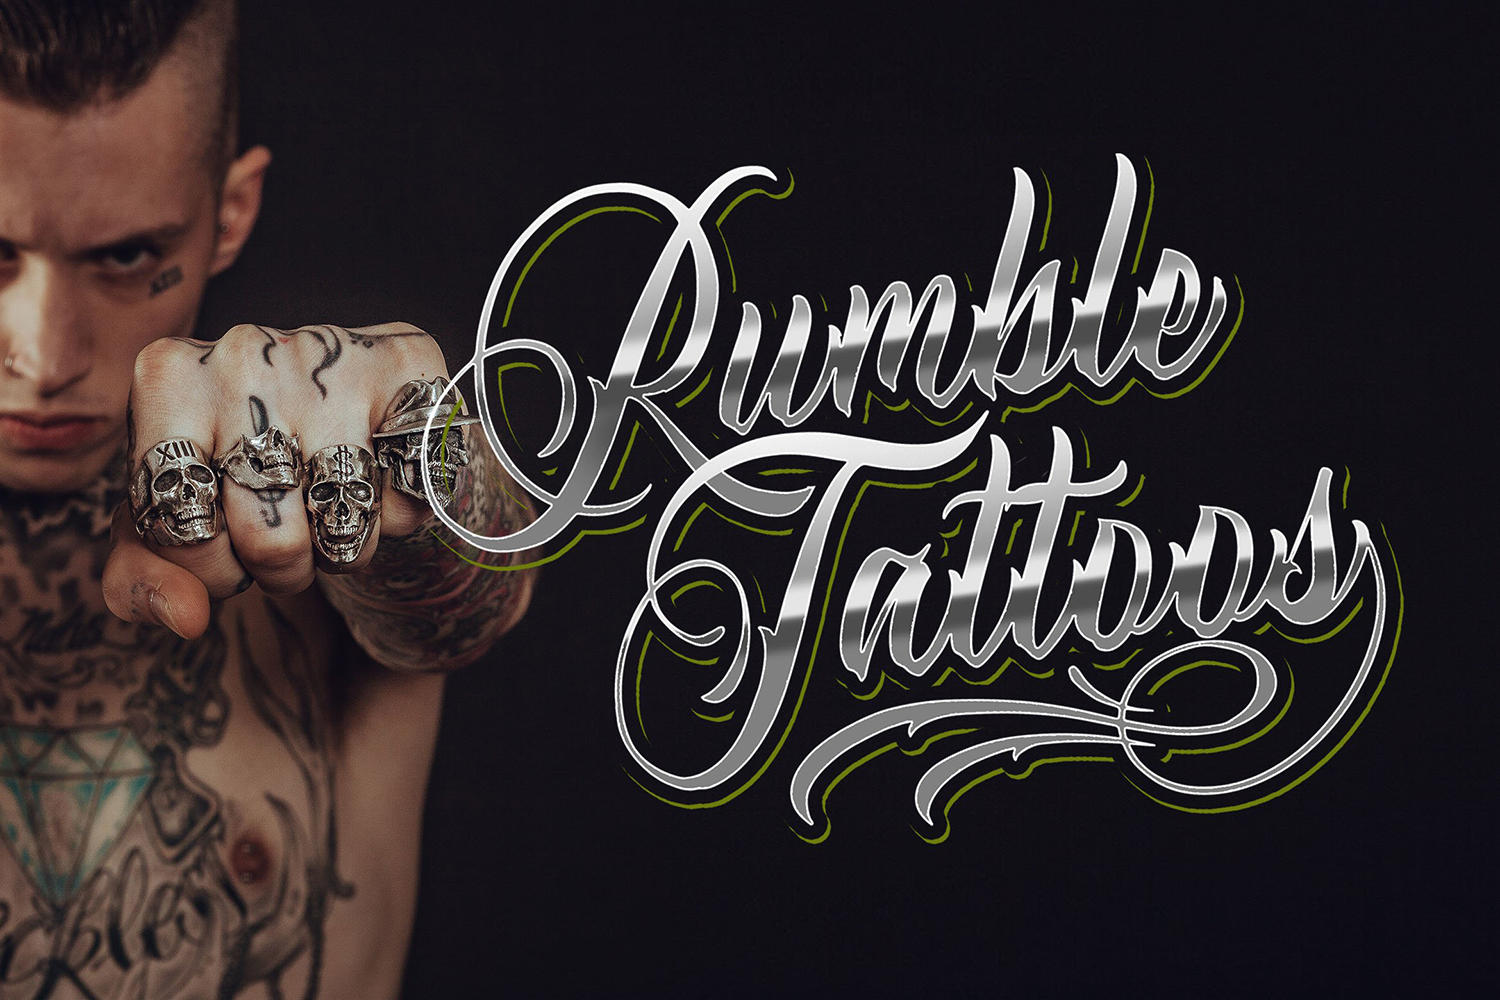 rumble tattoo font, scripting style